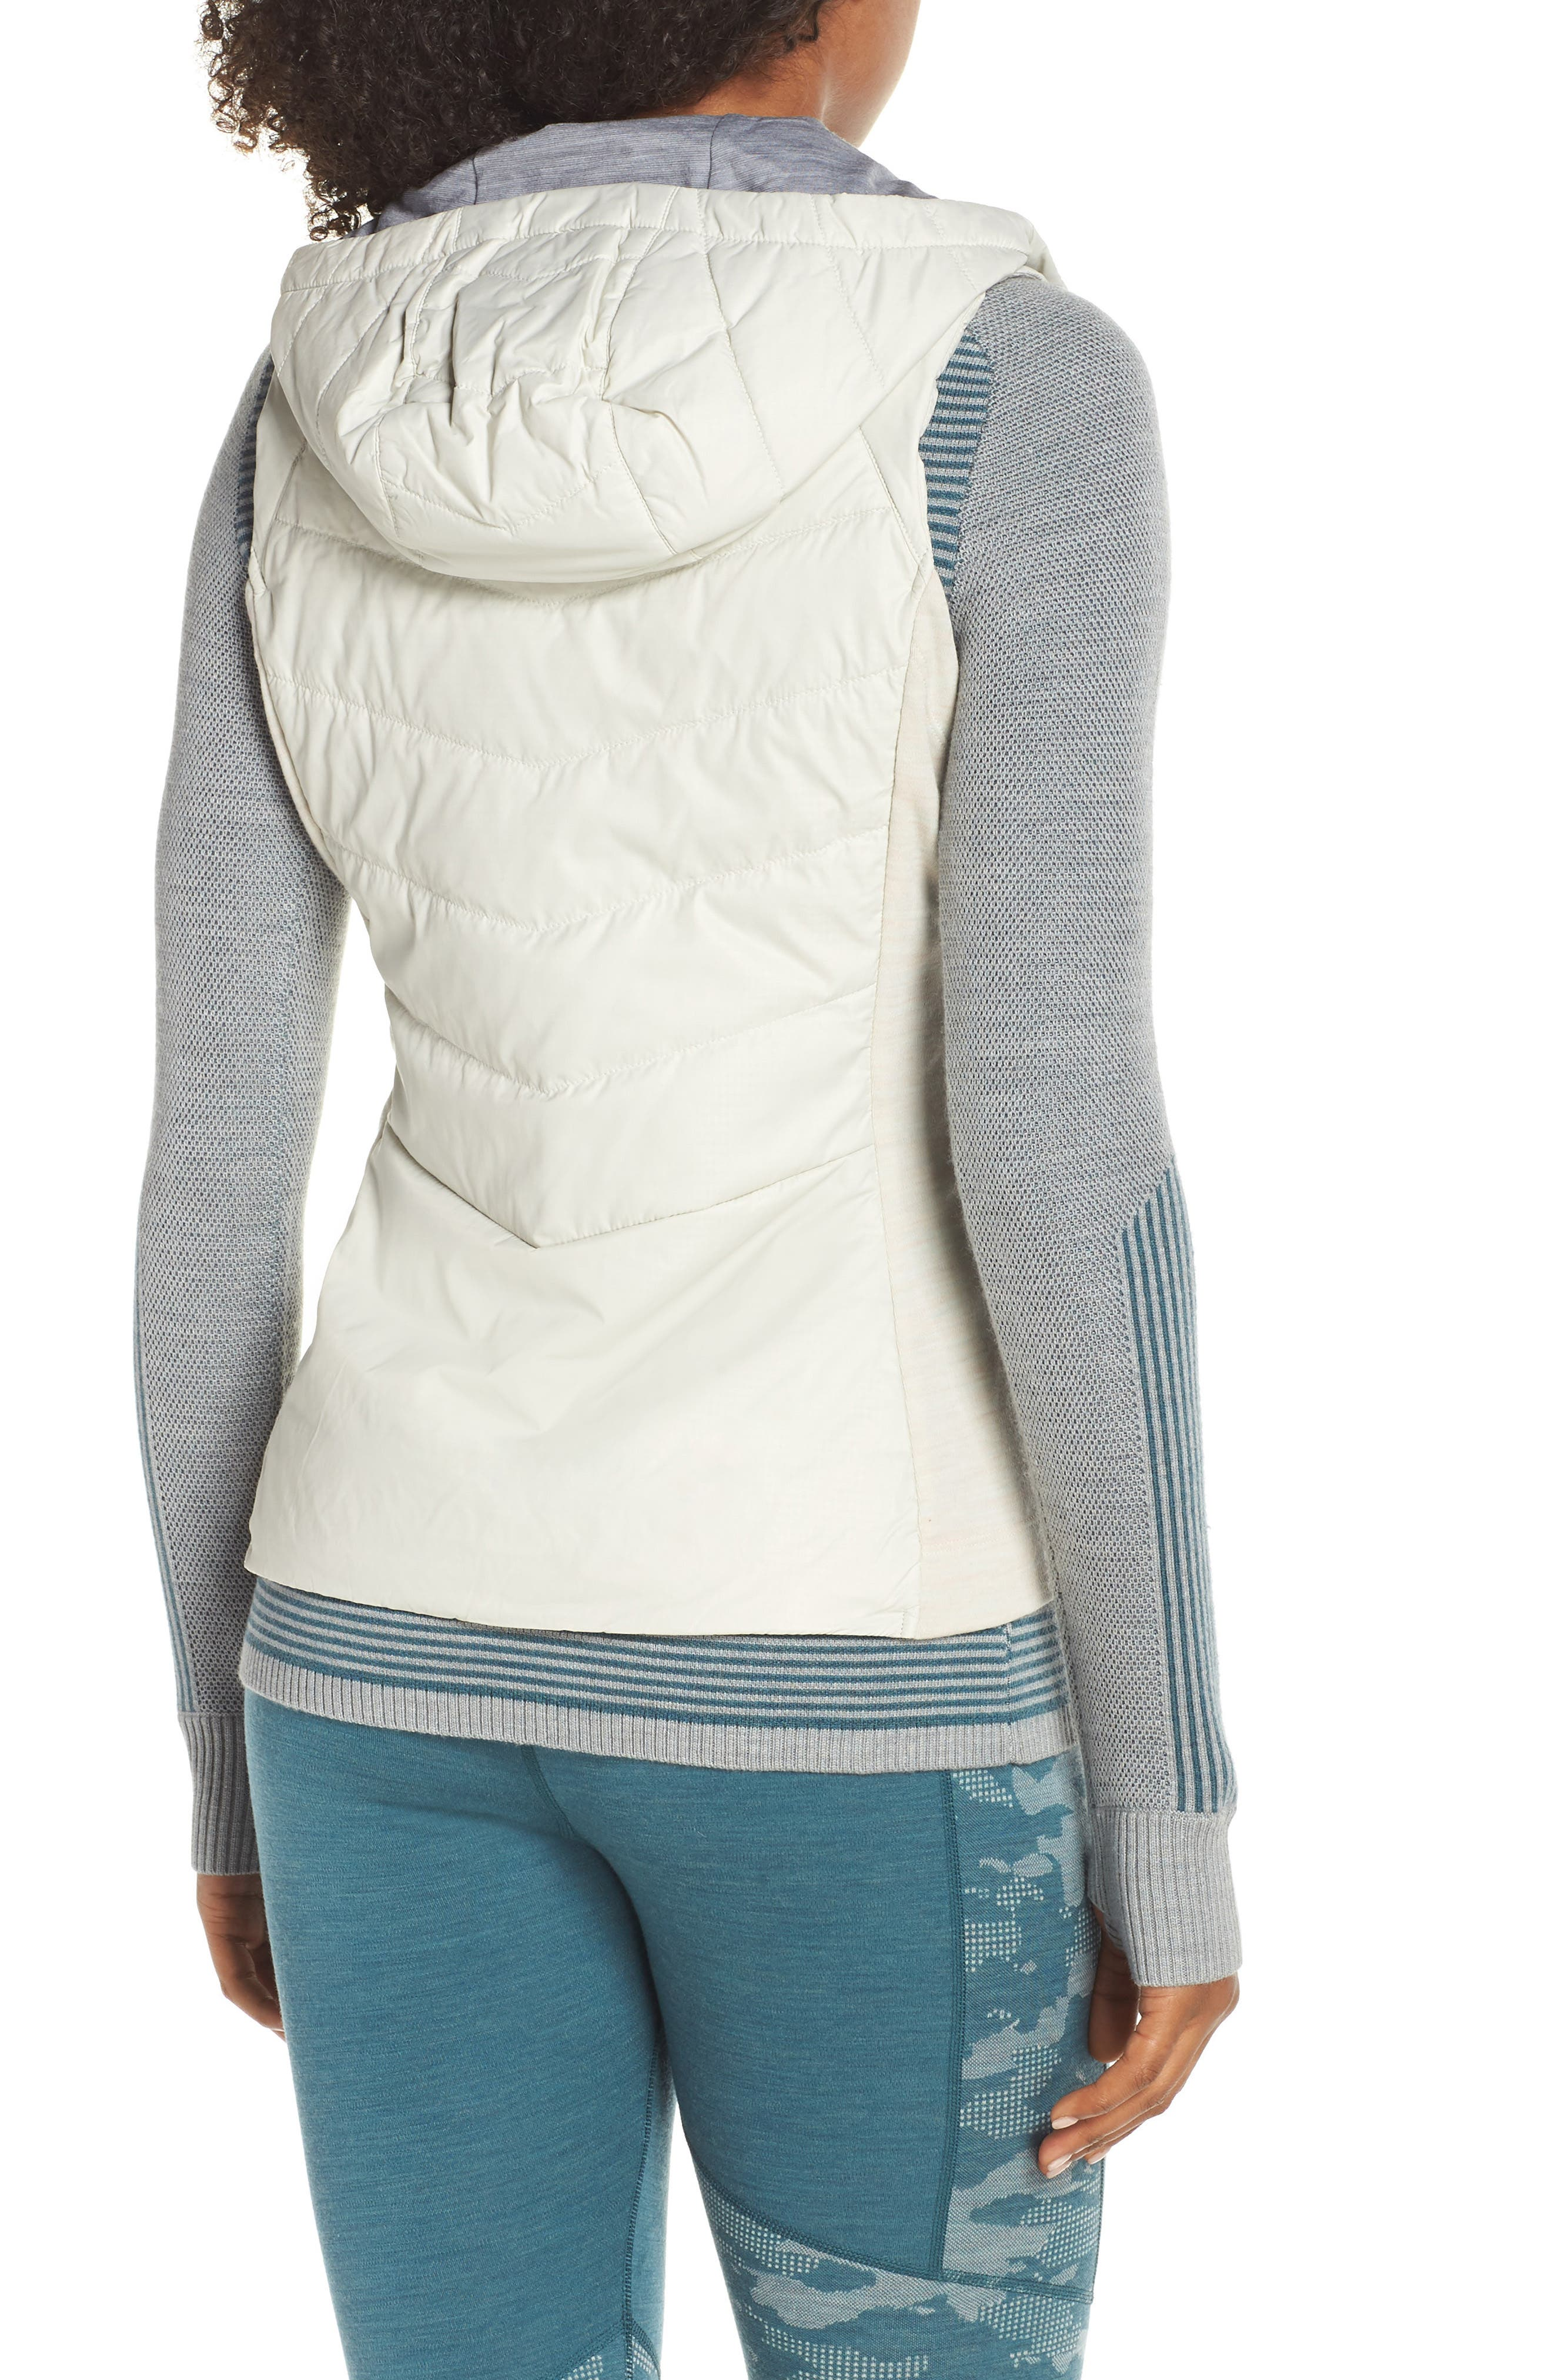 Smartloft 60 Insulated Hooded Vest,                             Alternate thumbnail 2, color,                             SILVER BIRCH